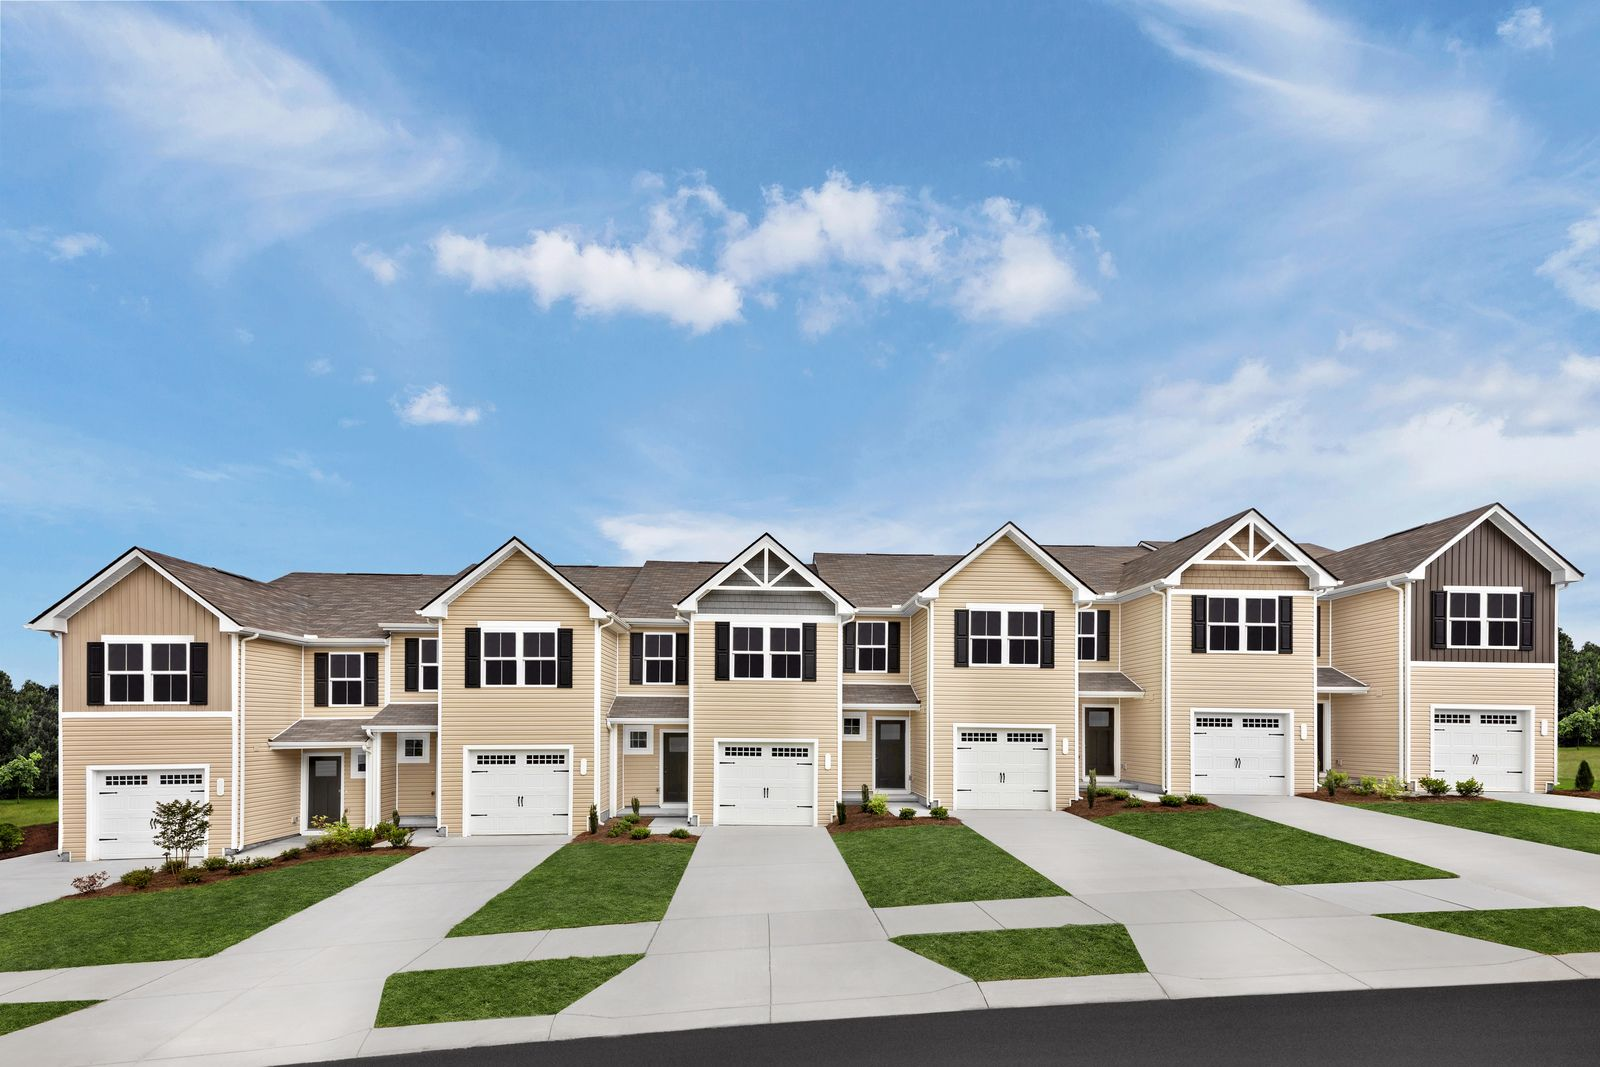 CEDAR RIDGE AT WOODALL - NOW SCHEDULING APPOINTMENTS:Brand new, low-maintenance townhomes only 1 mile to I-40 with 1-car garages included – all from the mid $200s.Join the VIP list to schedule your appointment!